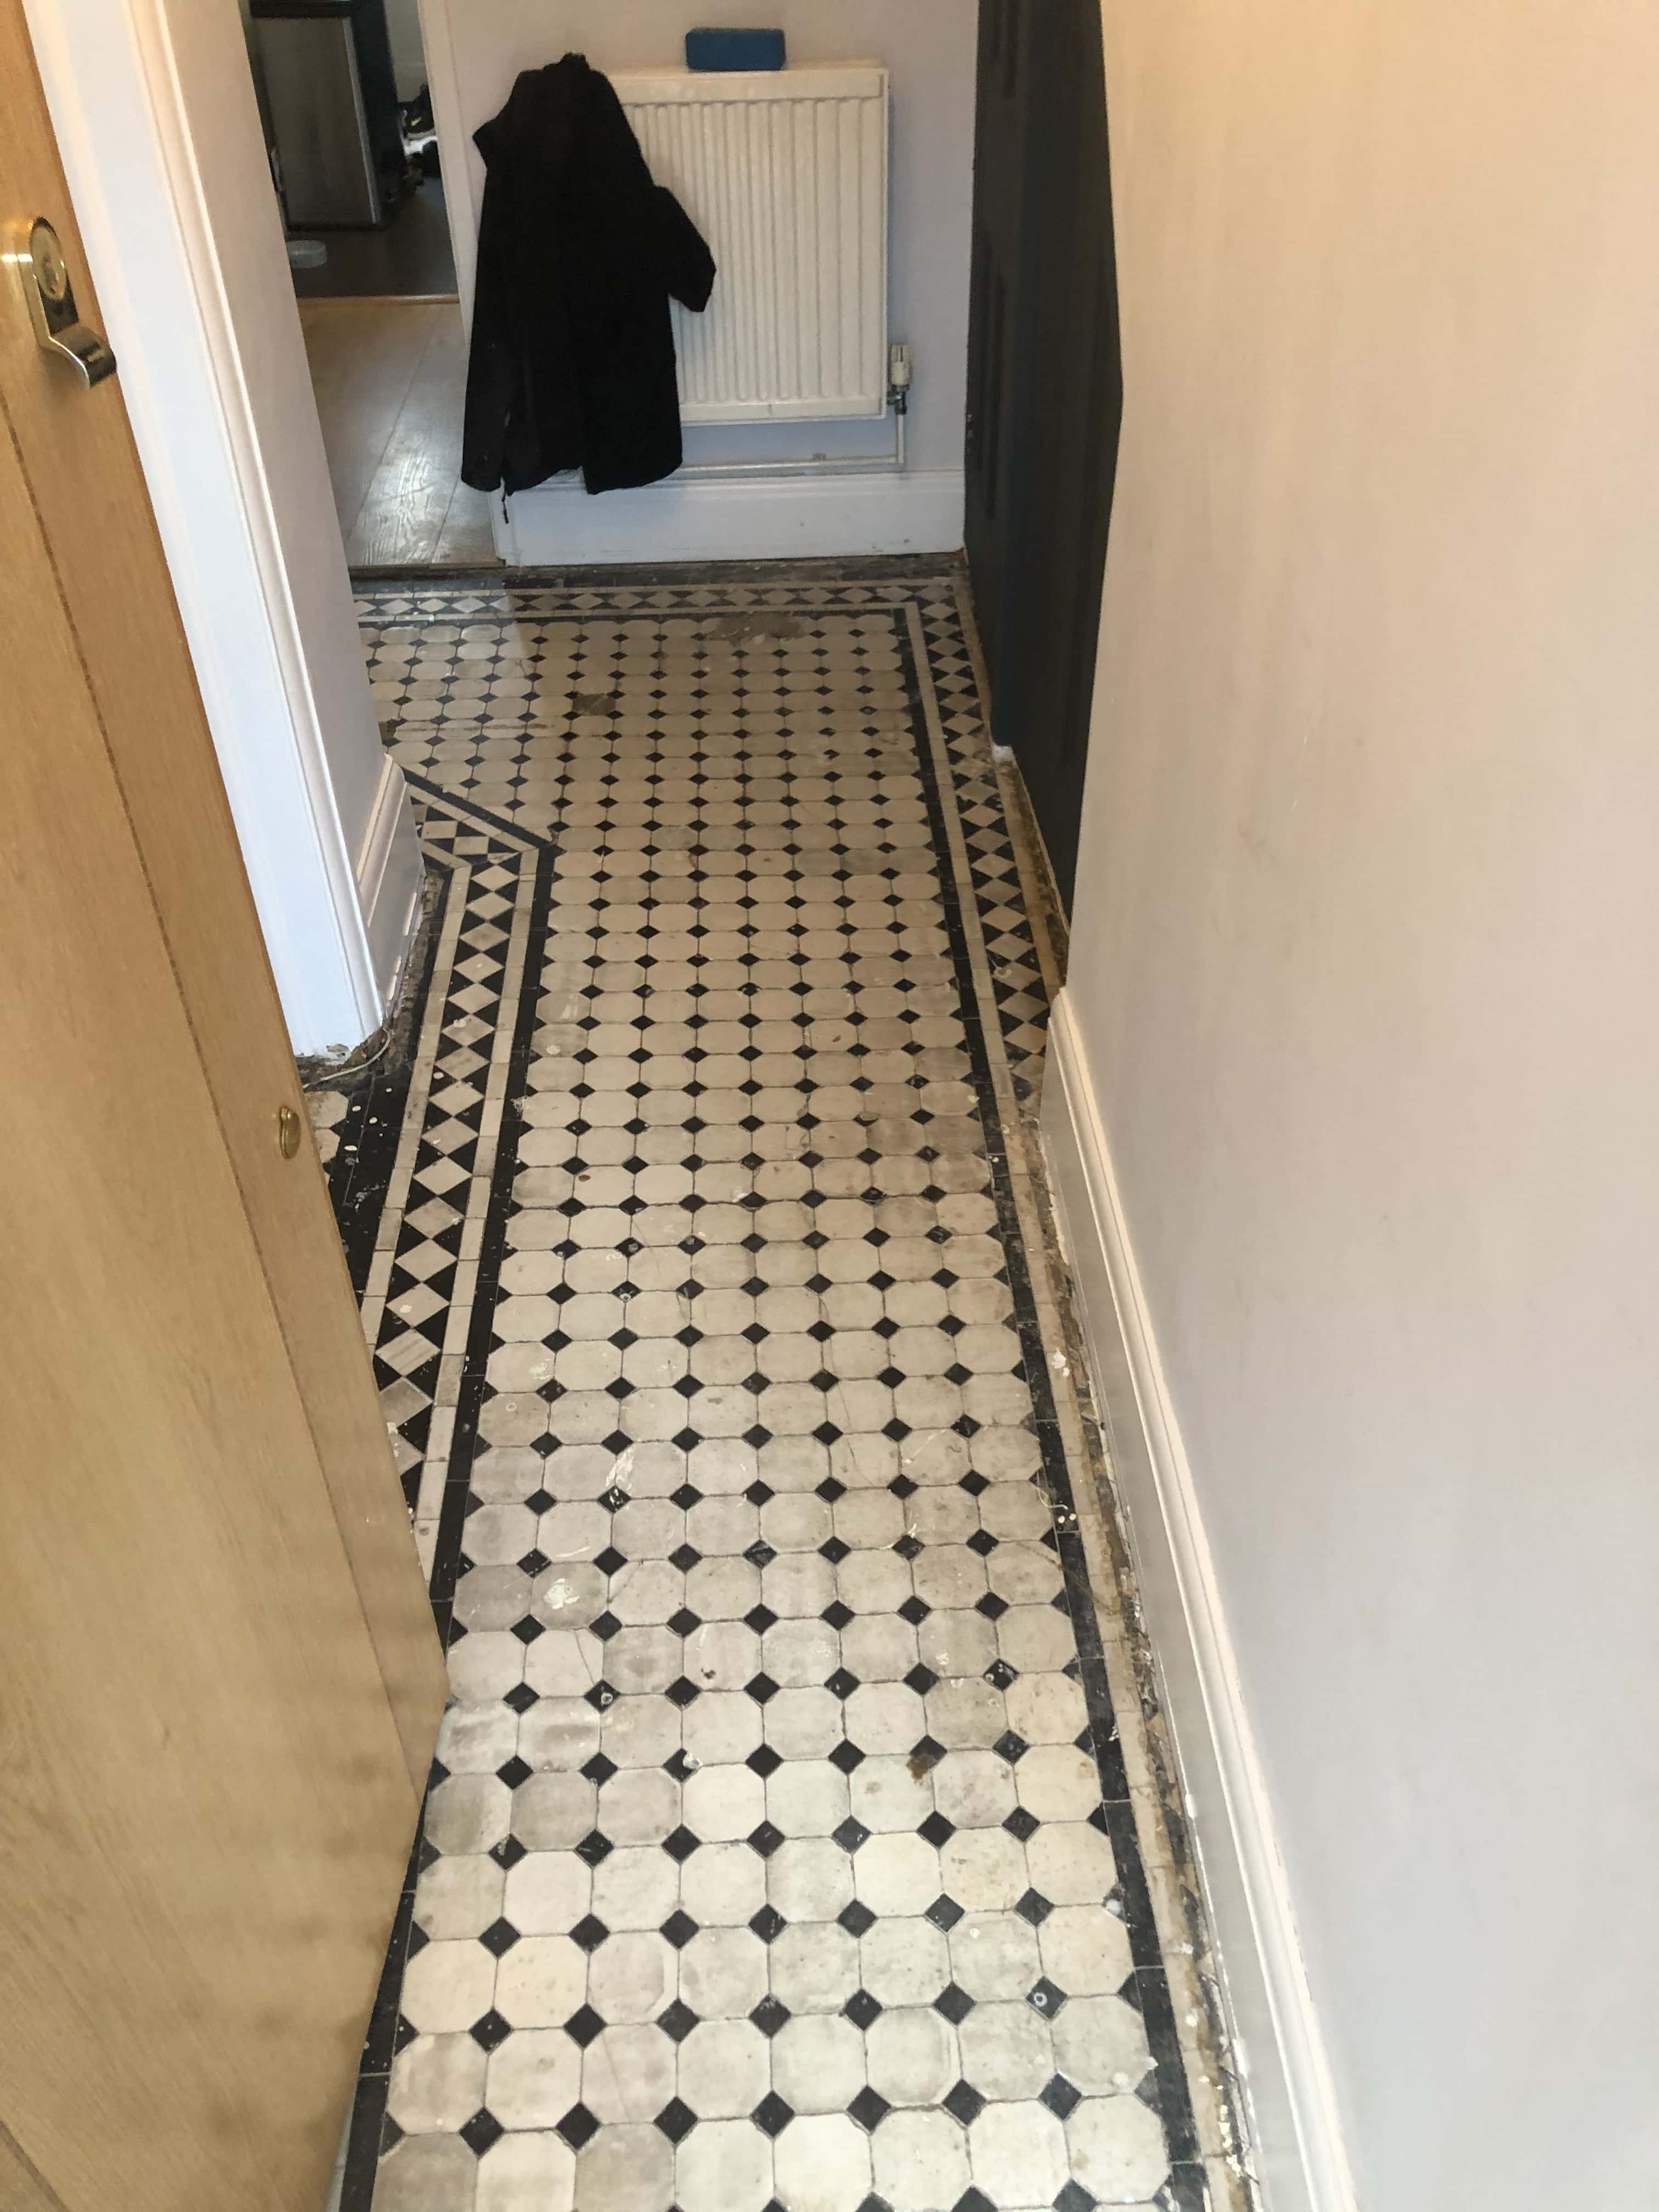 Edwardian Tiled Hallway Floor Before Renovation Finchley